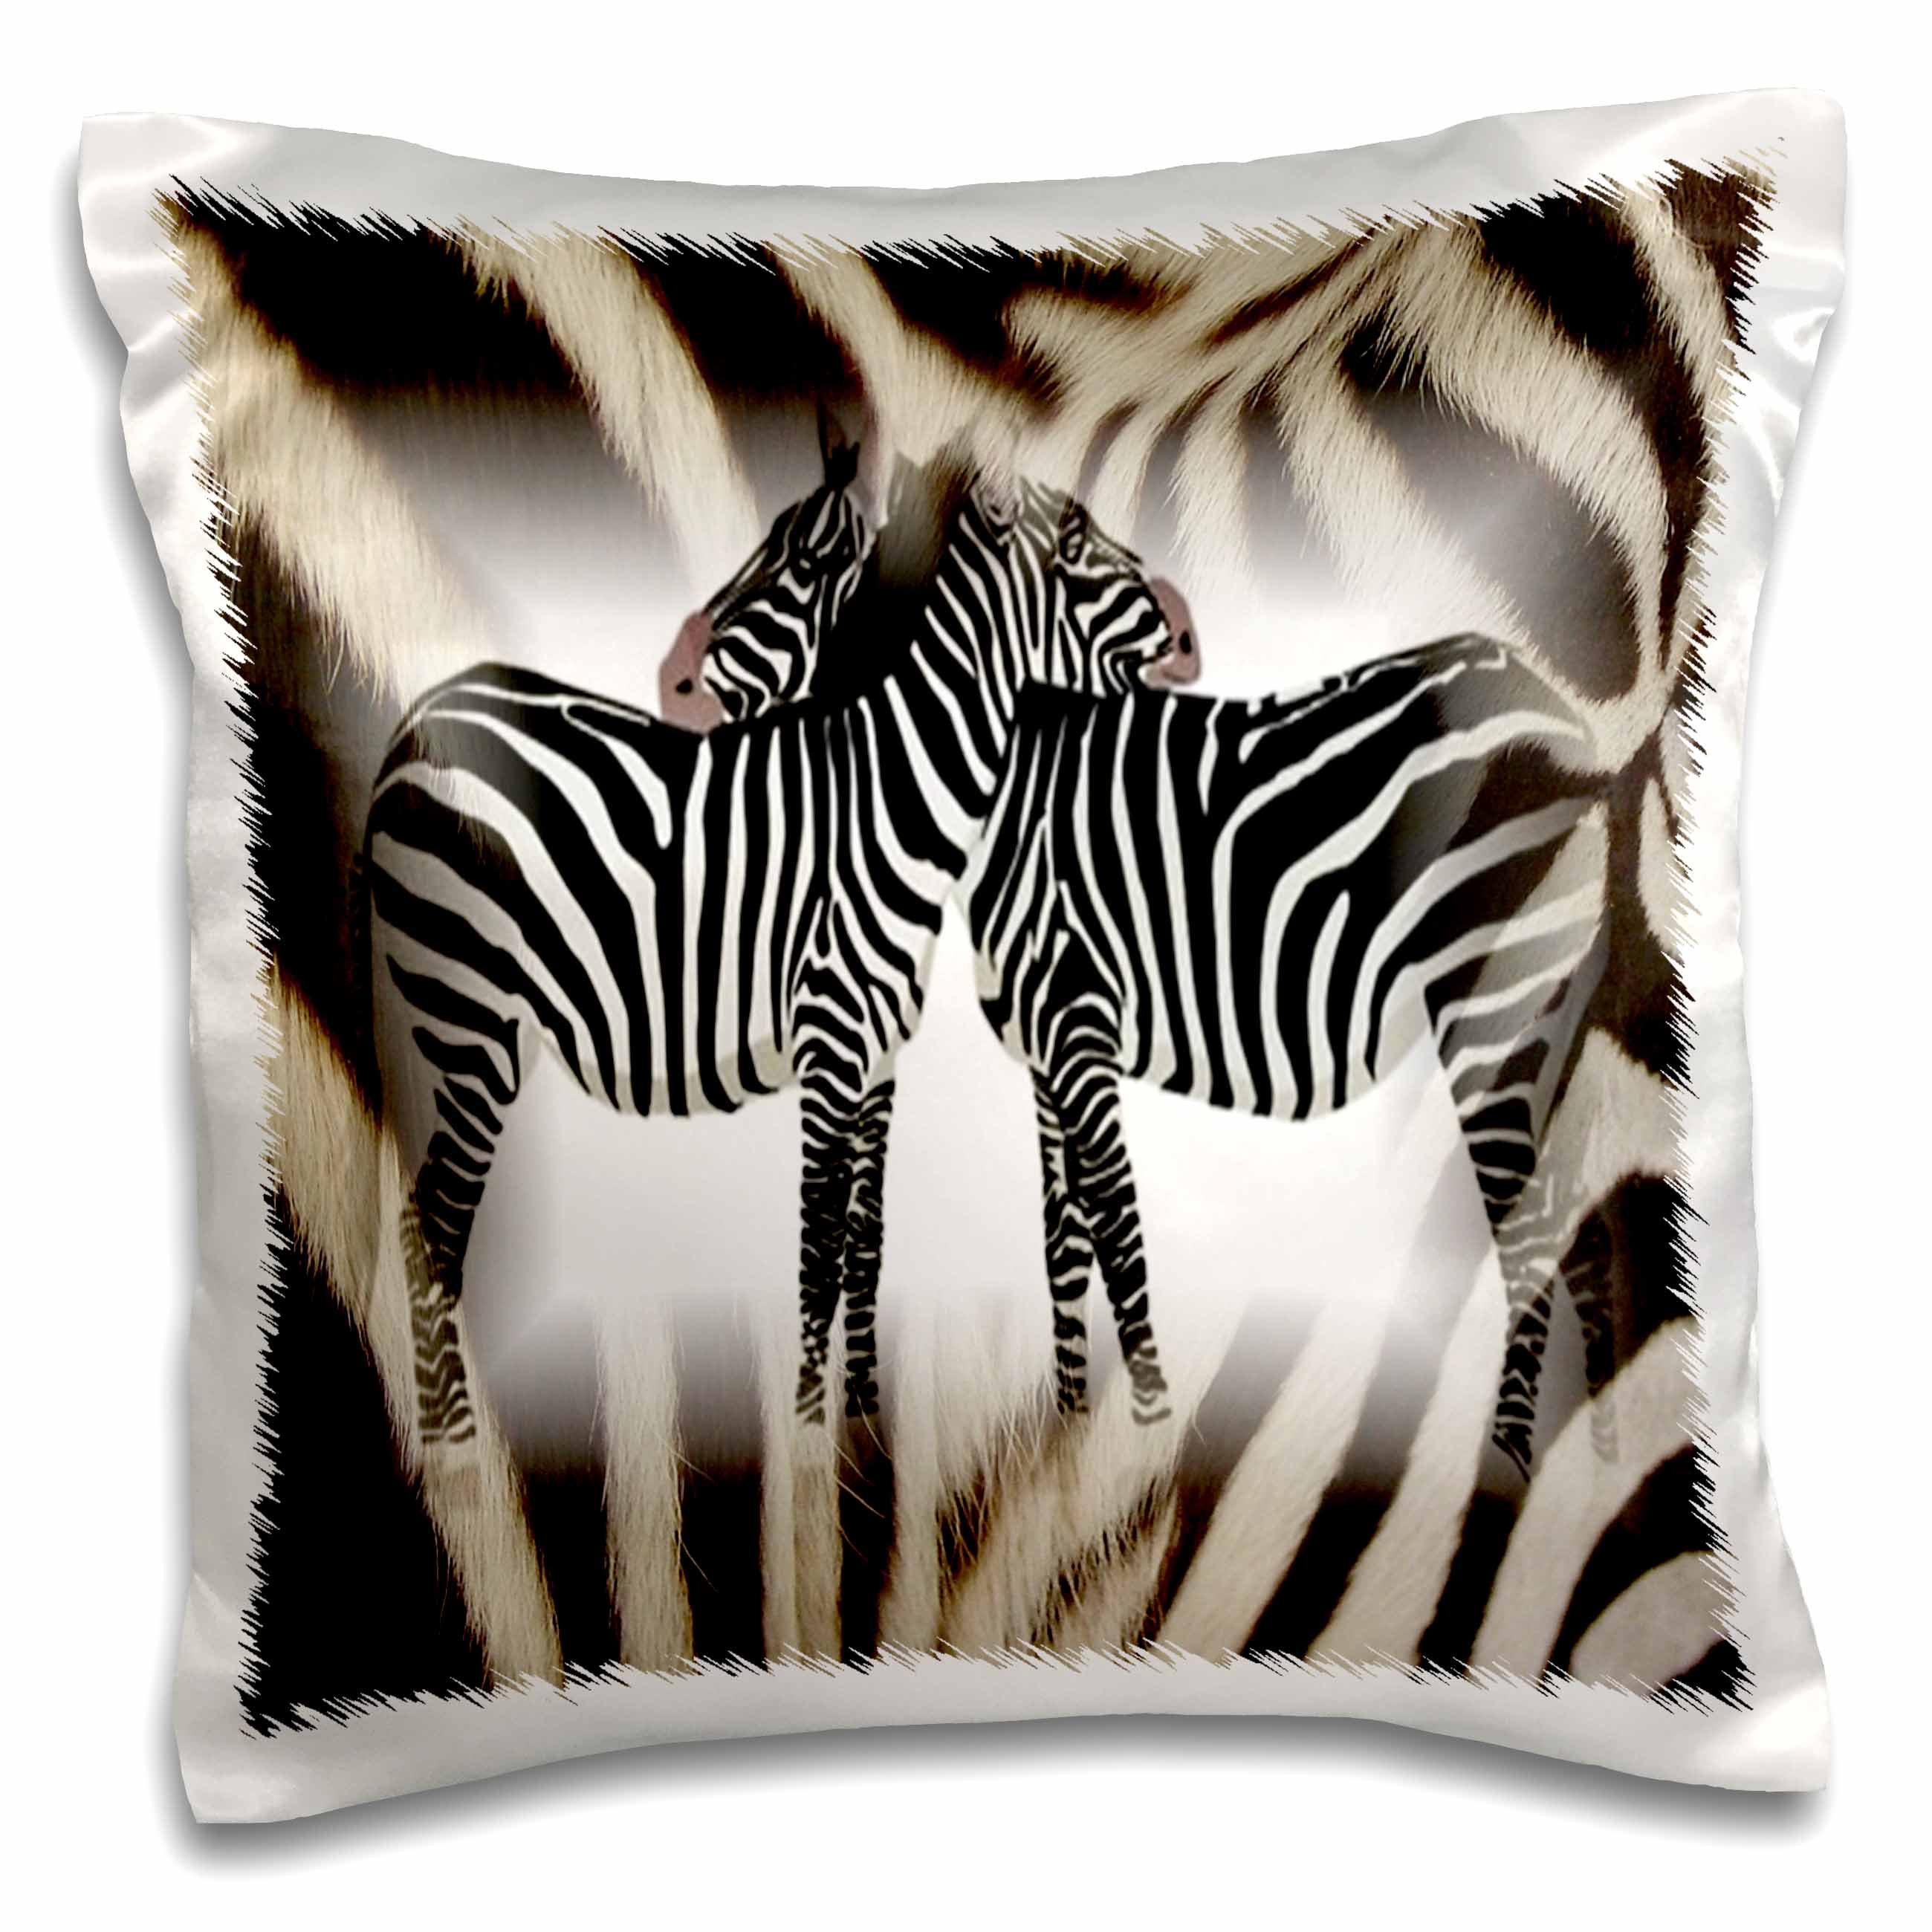 3drose 2 hugging zebras on real zebra fur pillow case 16 by 16